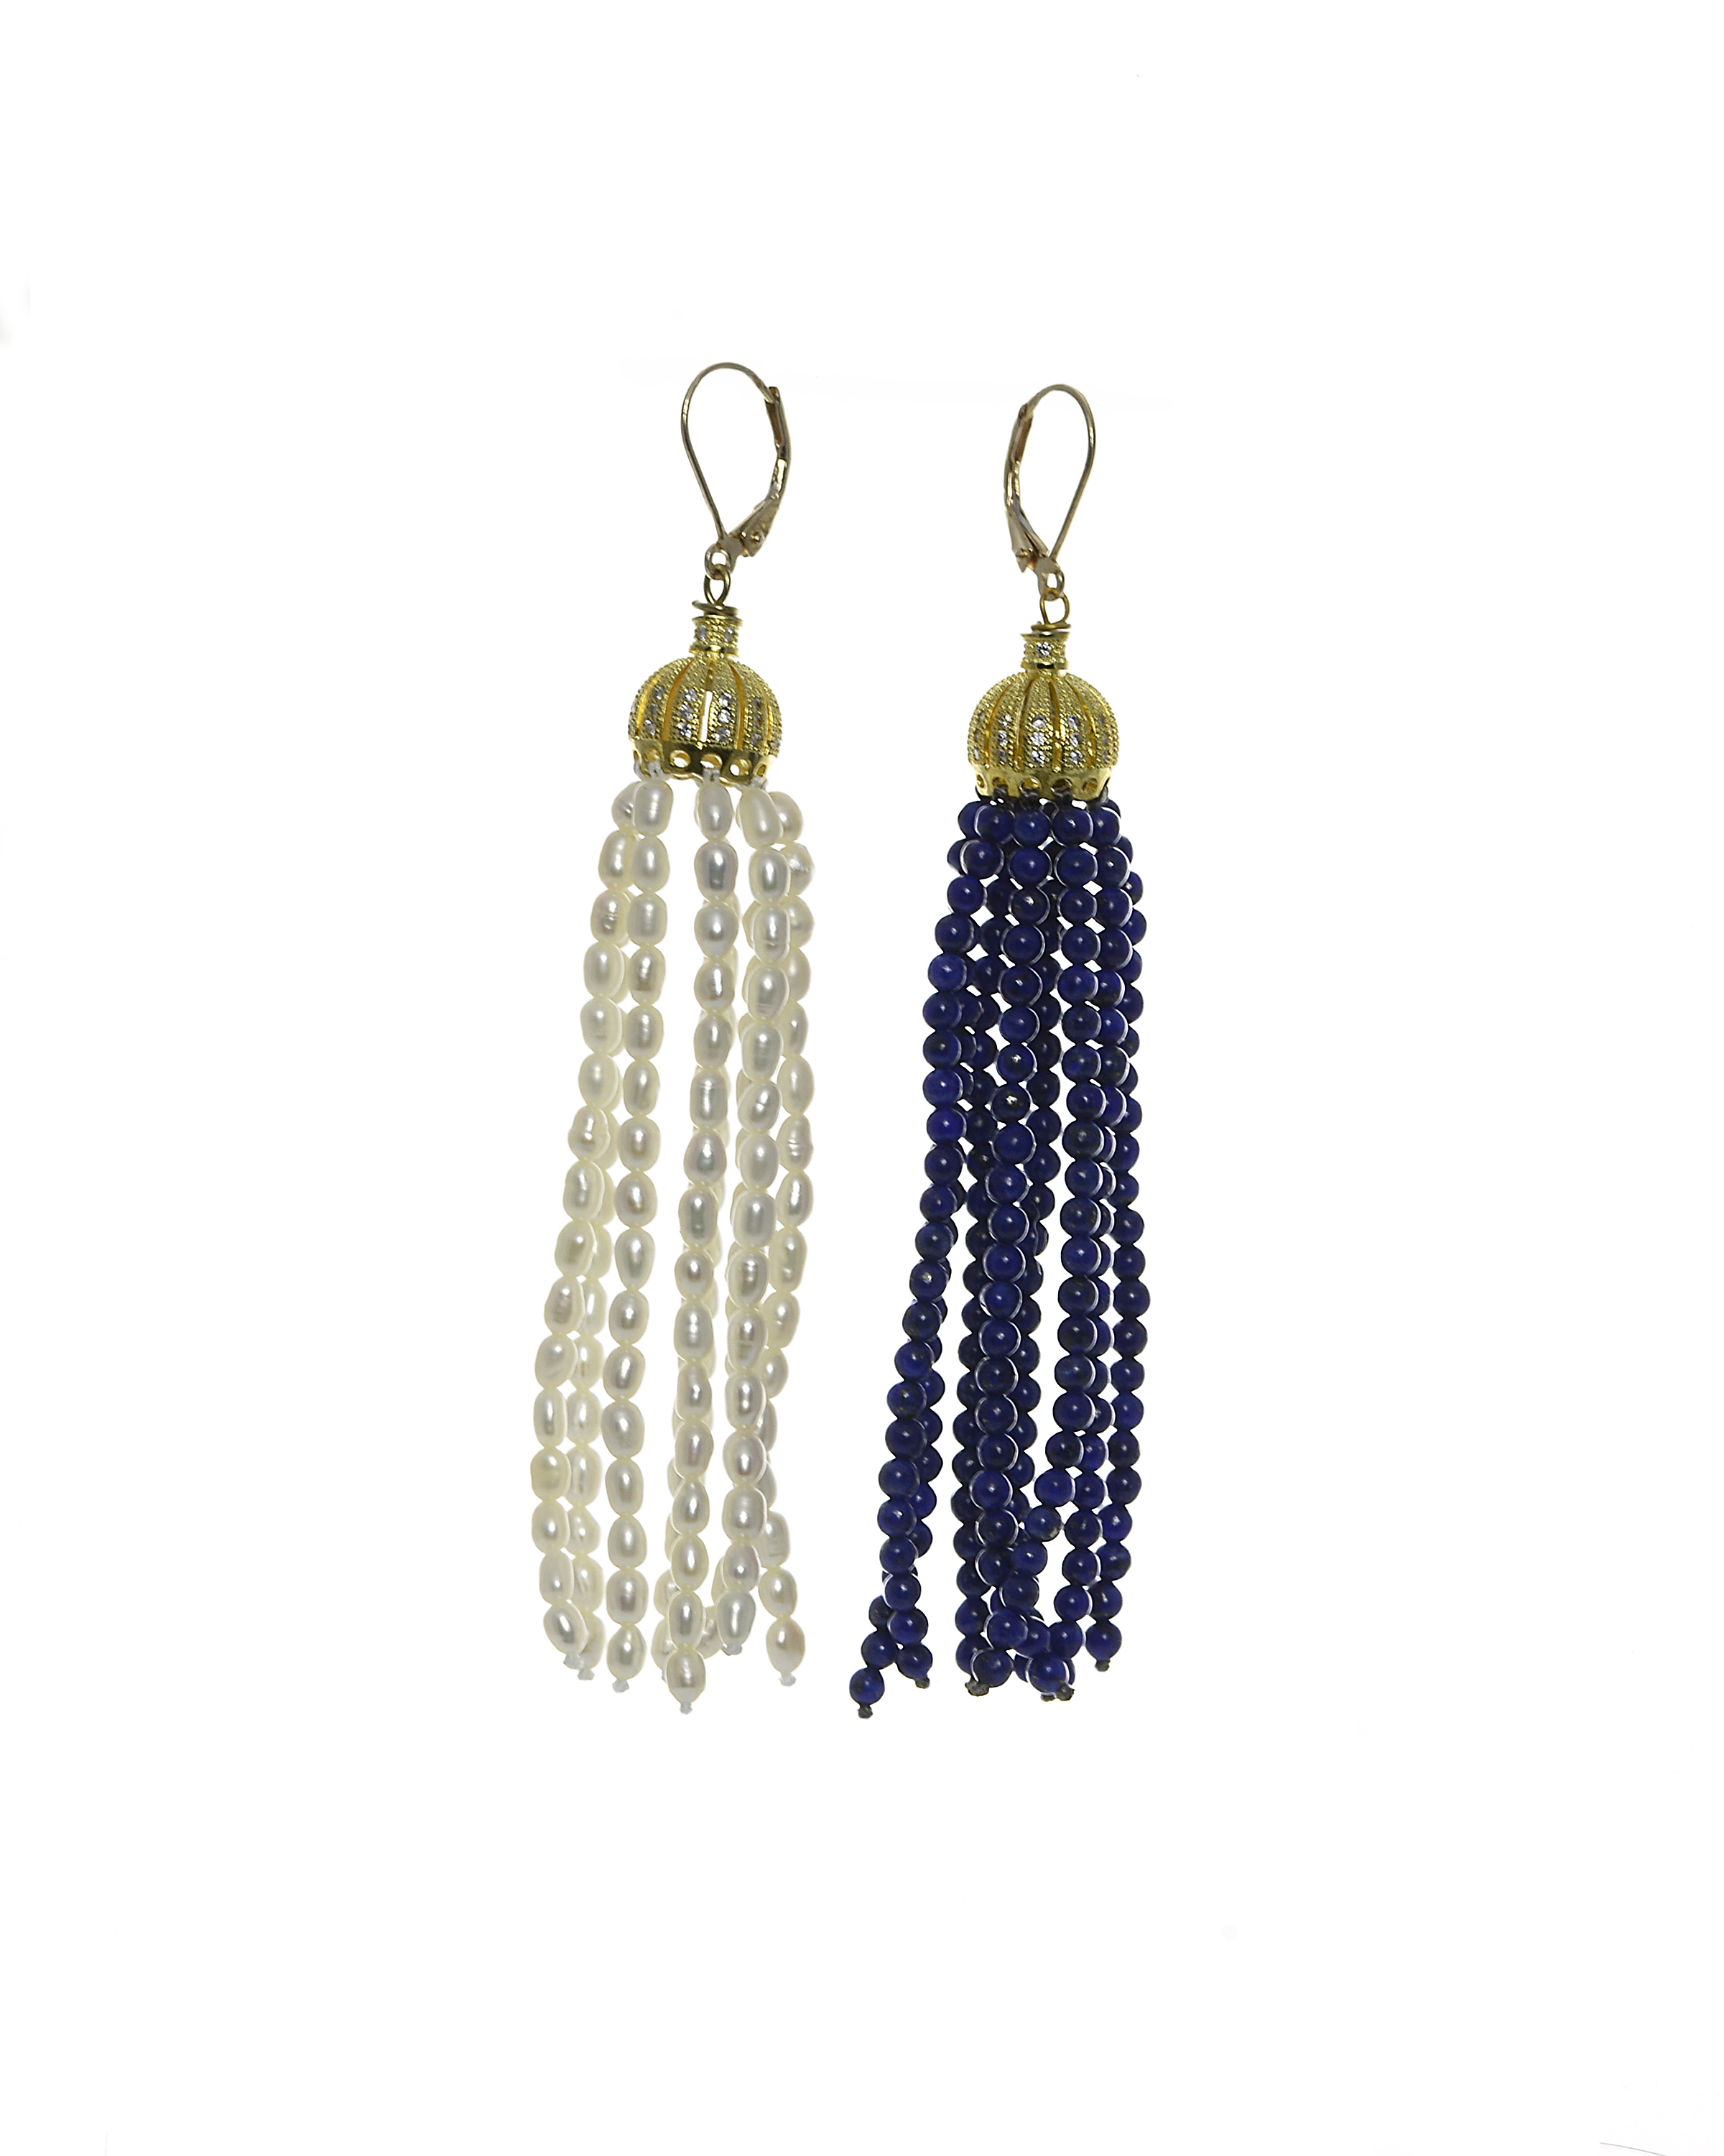 Obi - Seed Pearl & Blue Lapis Lazuli Tassel Earrings